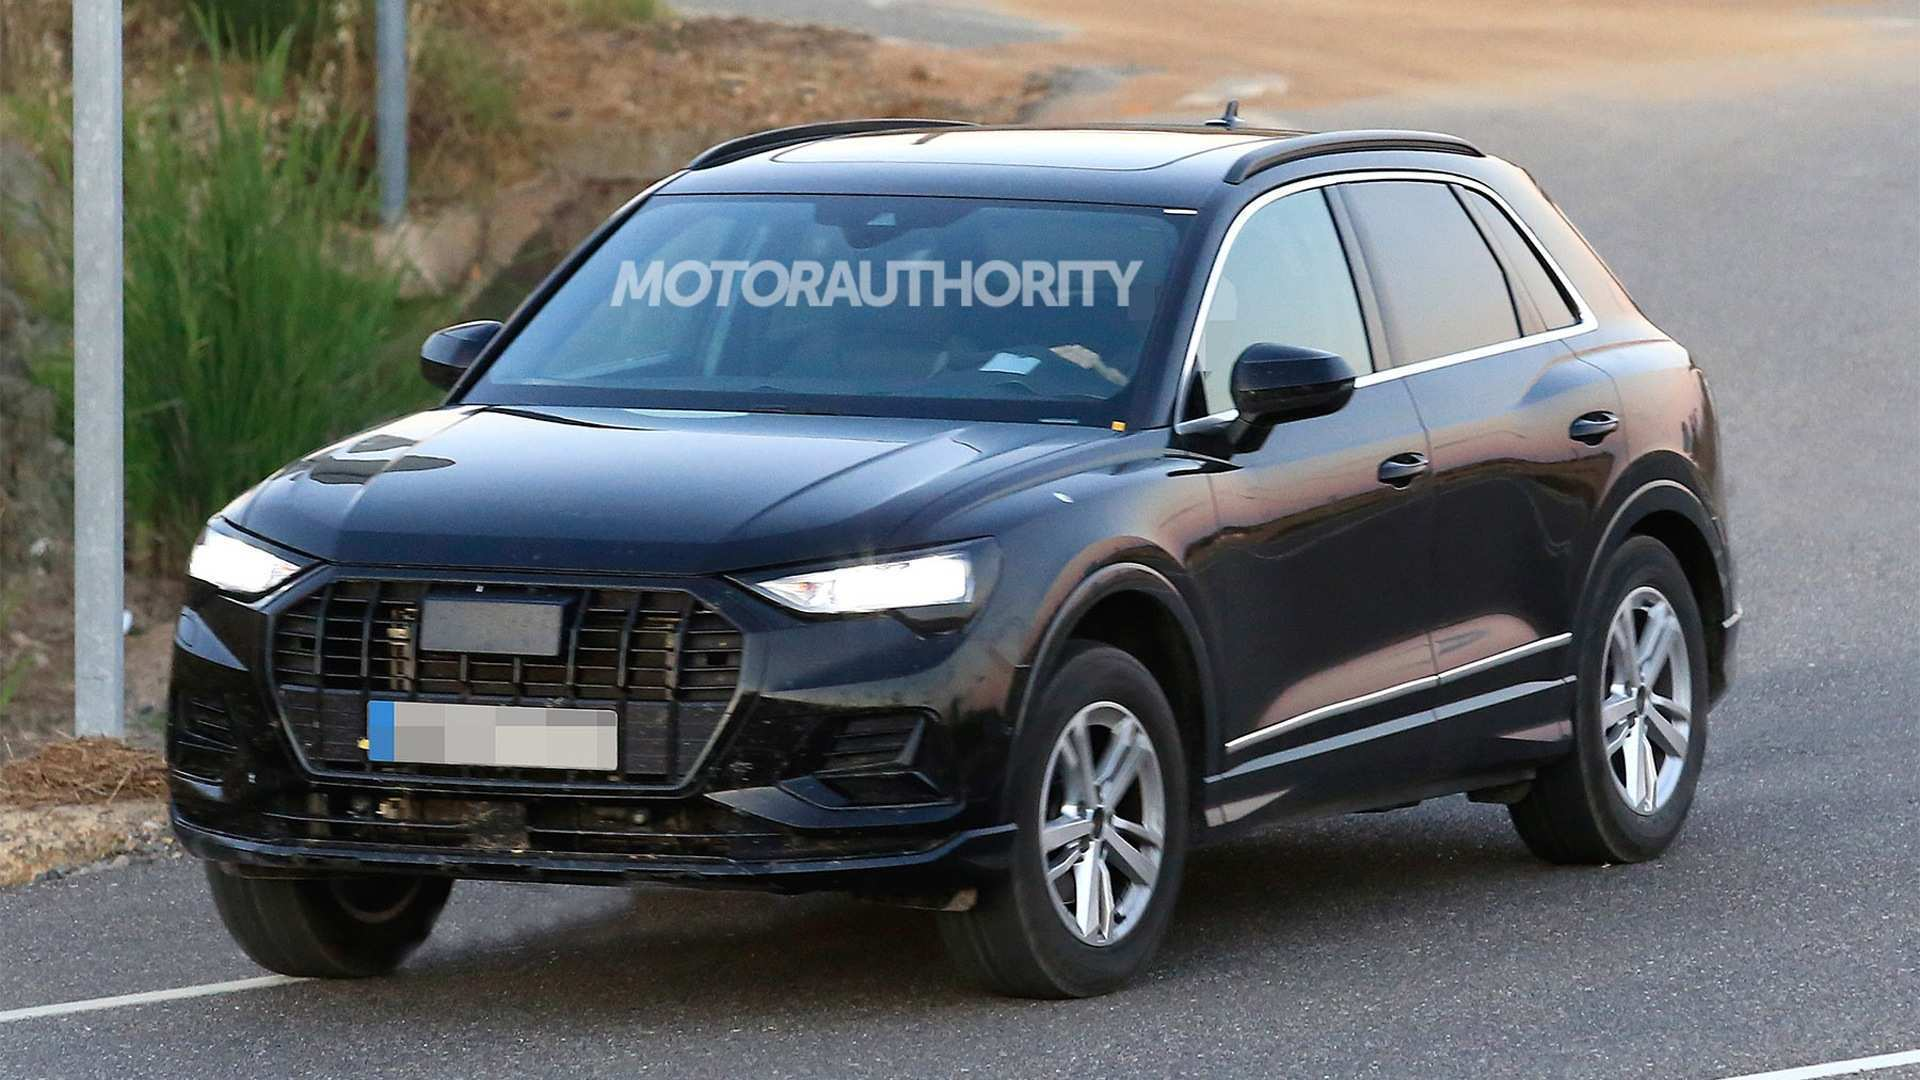 74 All New 2020 Audi Q3 Release Date New Review with 2020 Audi Q3 Release Date